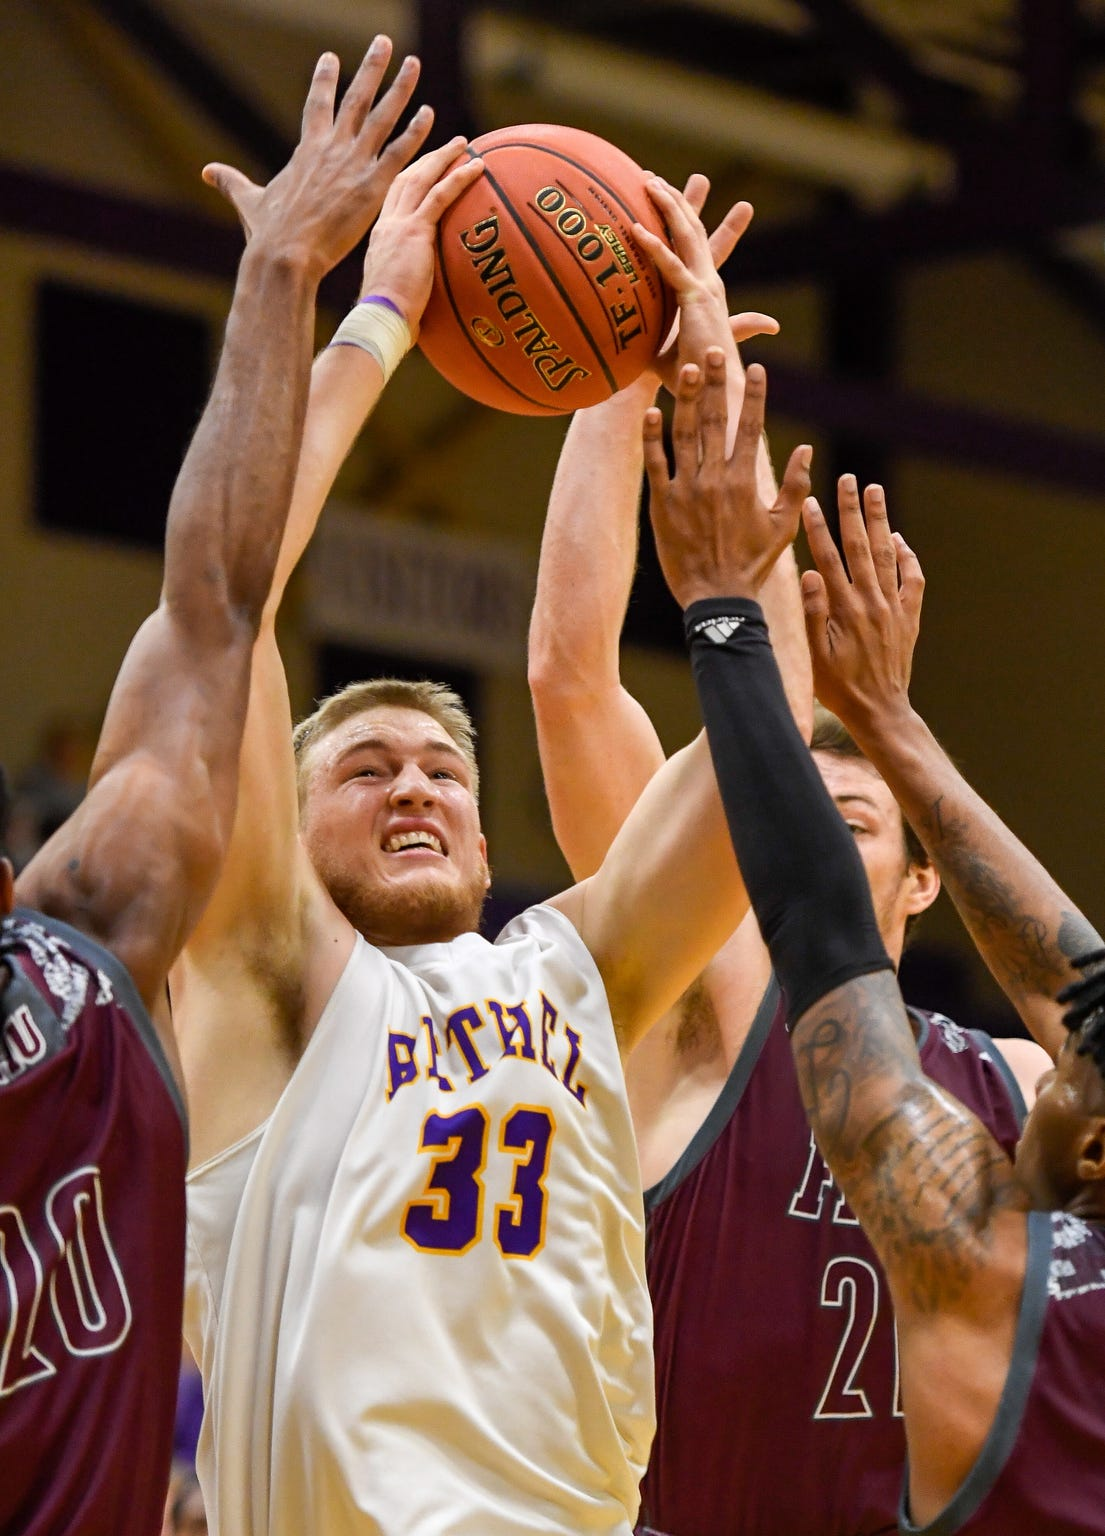 Surrounded by Freed-Hardeman defenders, center, Cayden Edmonson, with the Bethel Wildcats, takes the ball to the basket during a game at Bethel's Crisp Arena Thursday evening, November 14, 2019